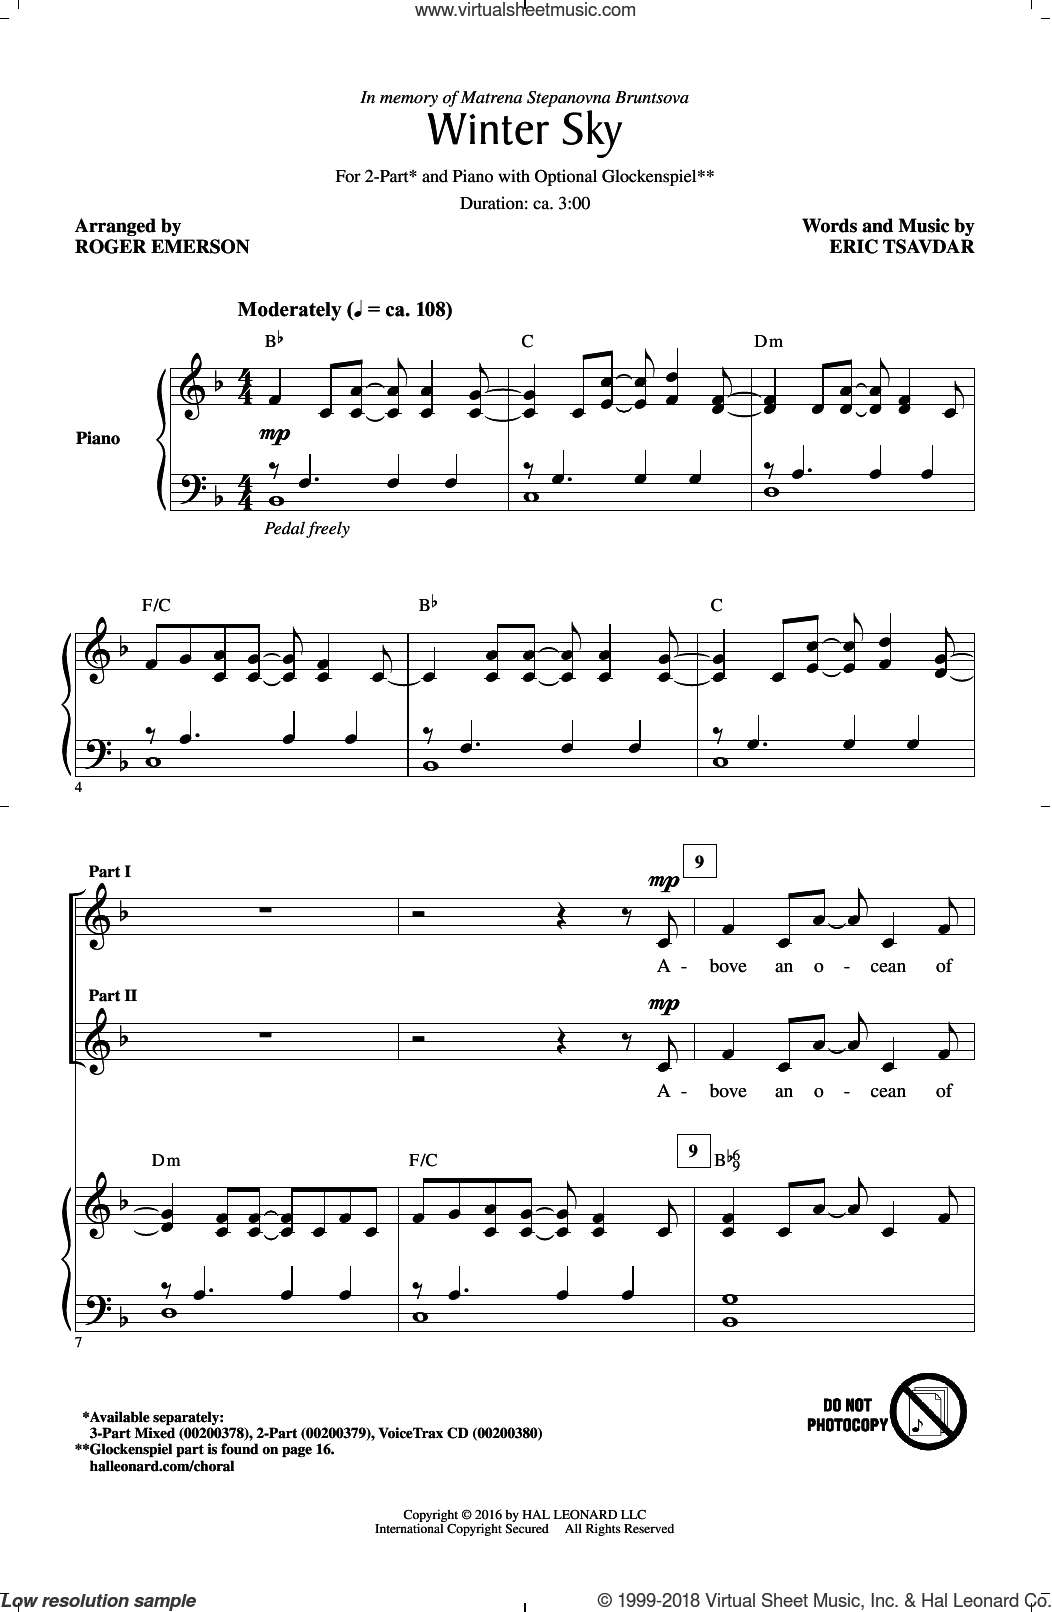 Winter Sky sheet music for choir and piano (duets) by Eric Tsavdar